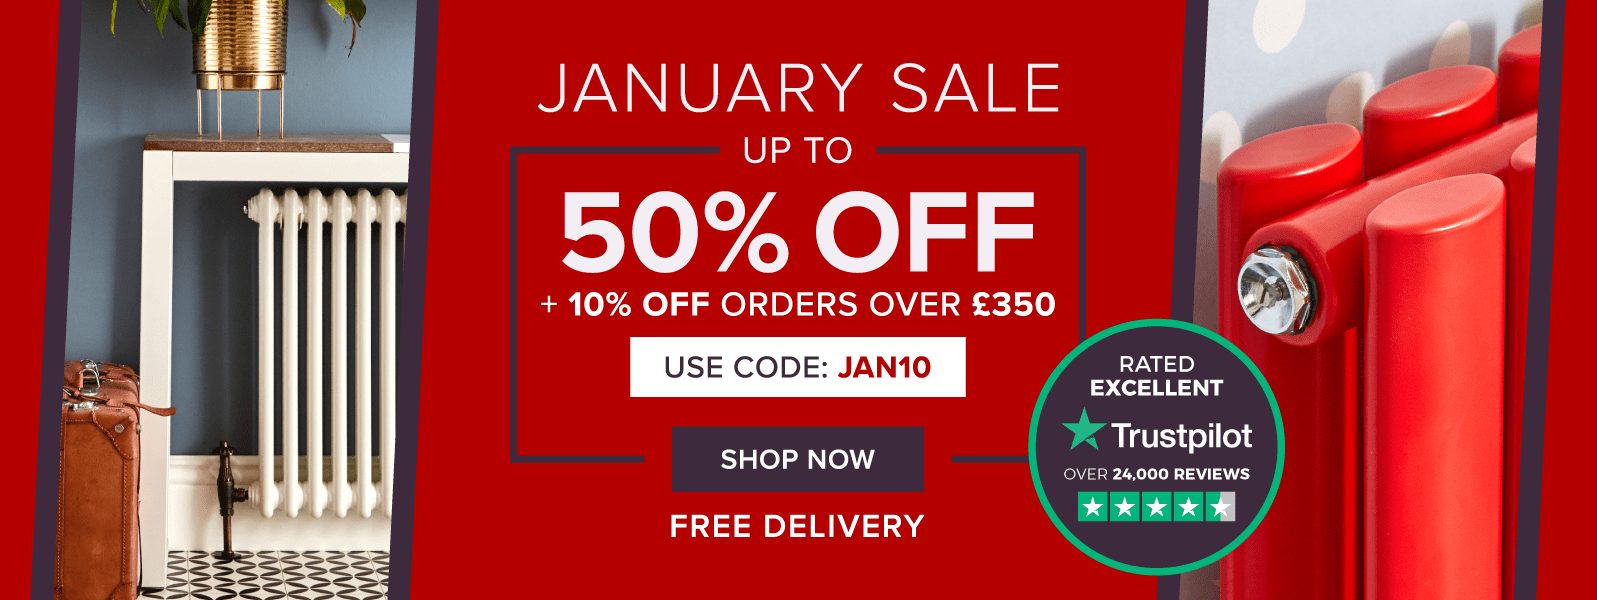 January Sale Up to 50% OFF Selected Products FREE DELIVERY GET AN EXTRA 10% OFF WHEN YOU SPEND £350 USE CODE JAN10 CTA - Shop Now